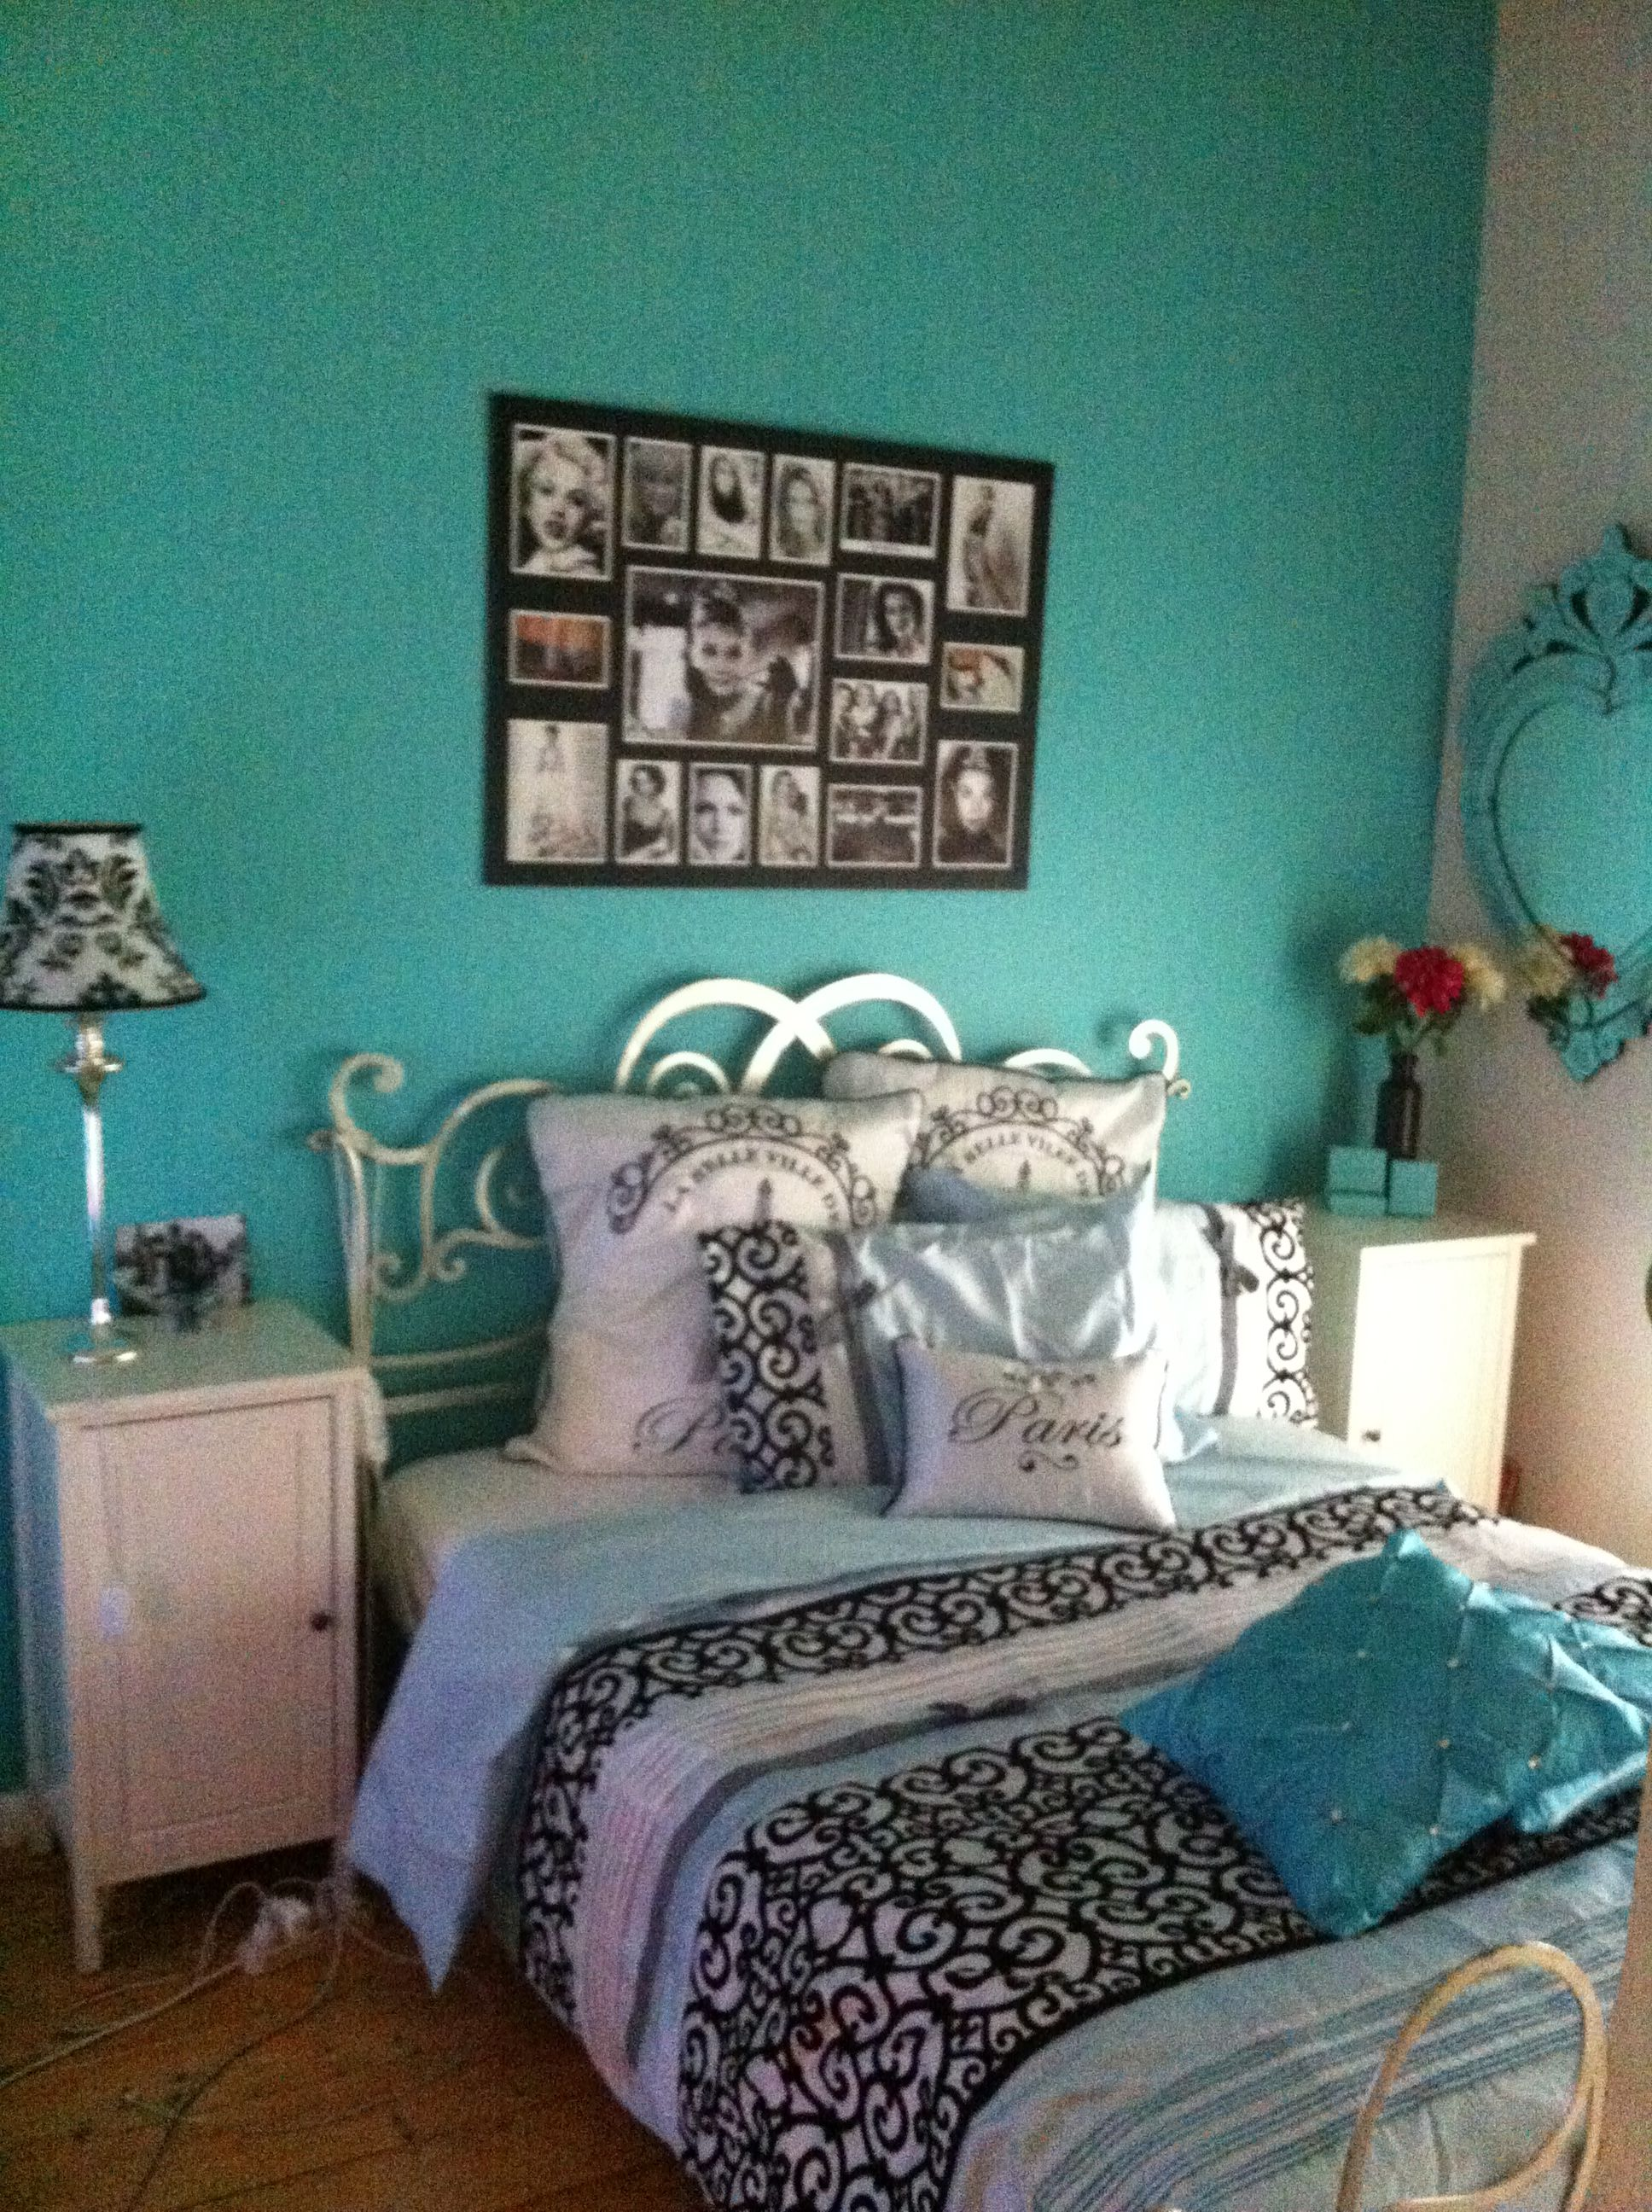 tiffany blue wall paris themed sheets venetian mirrors black and white old hollywood theme. Black Bedroom Furniture Sets. Home Design Ideas